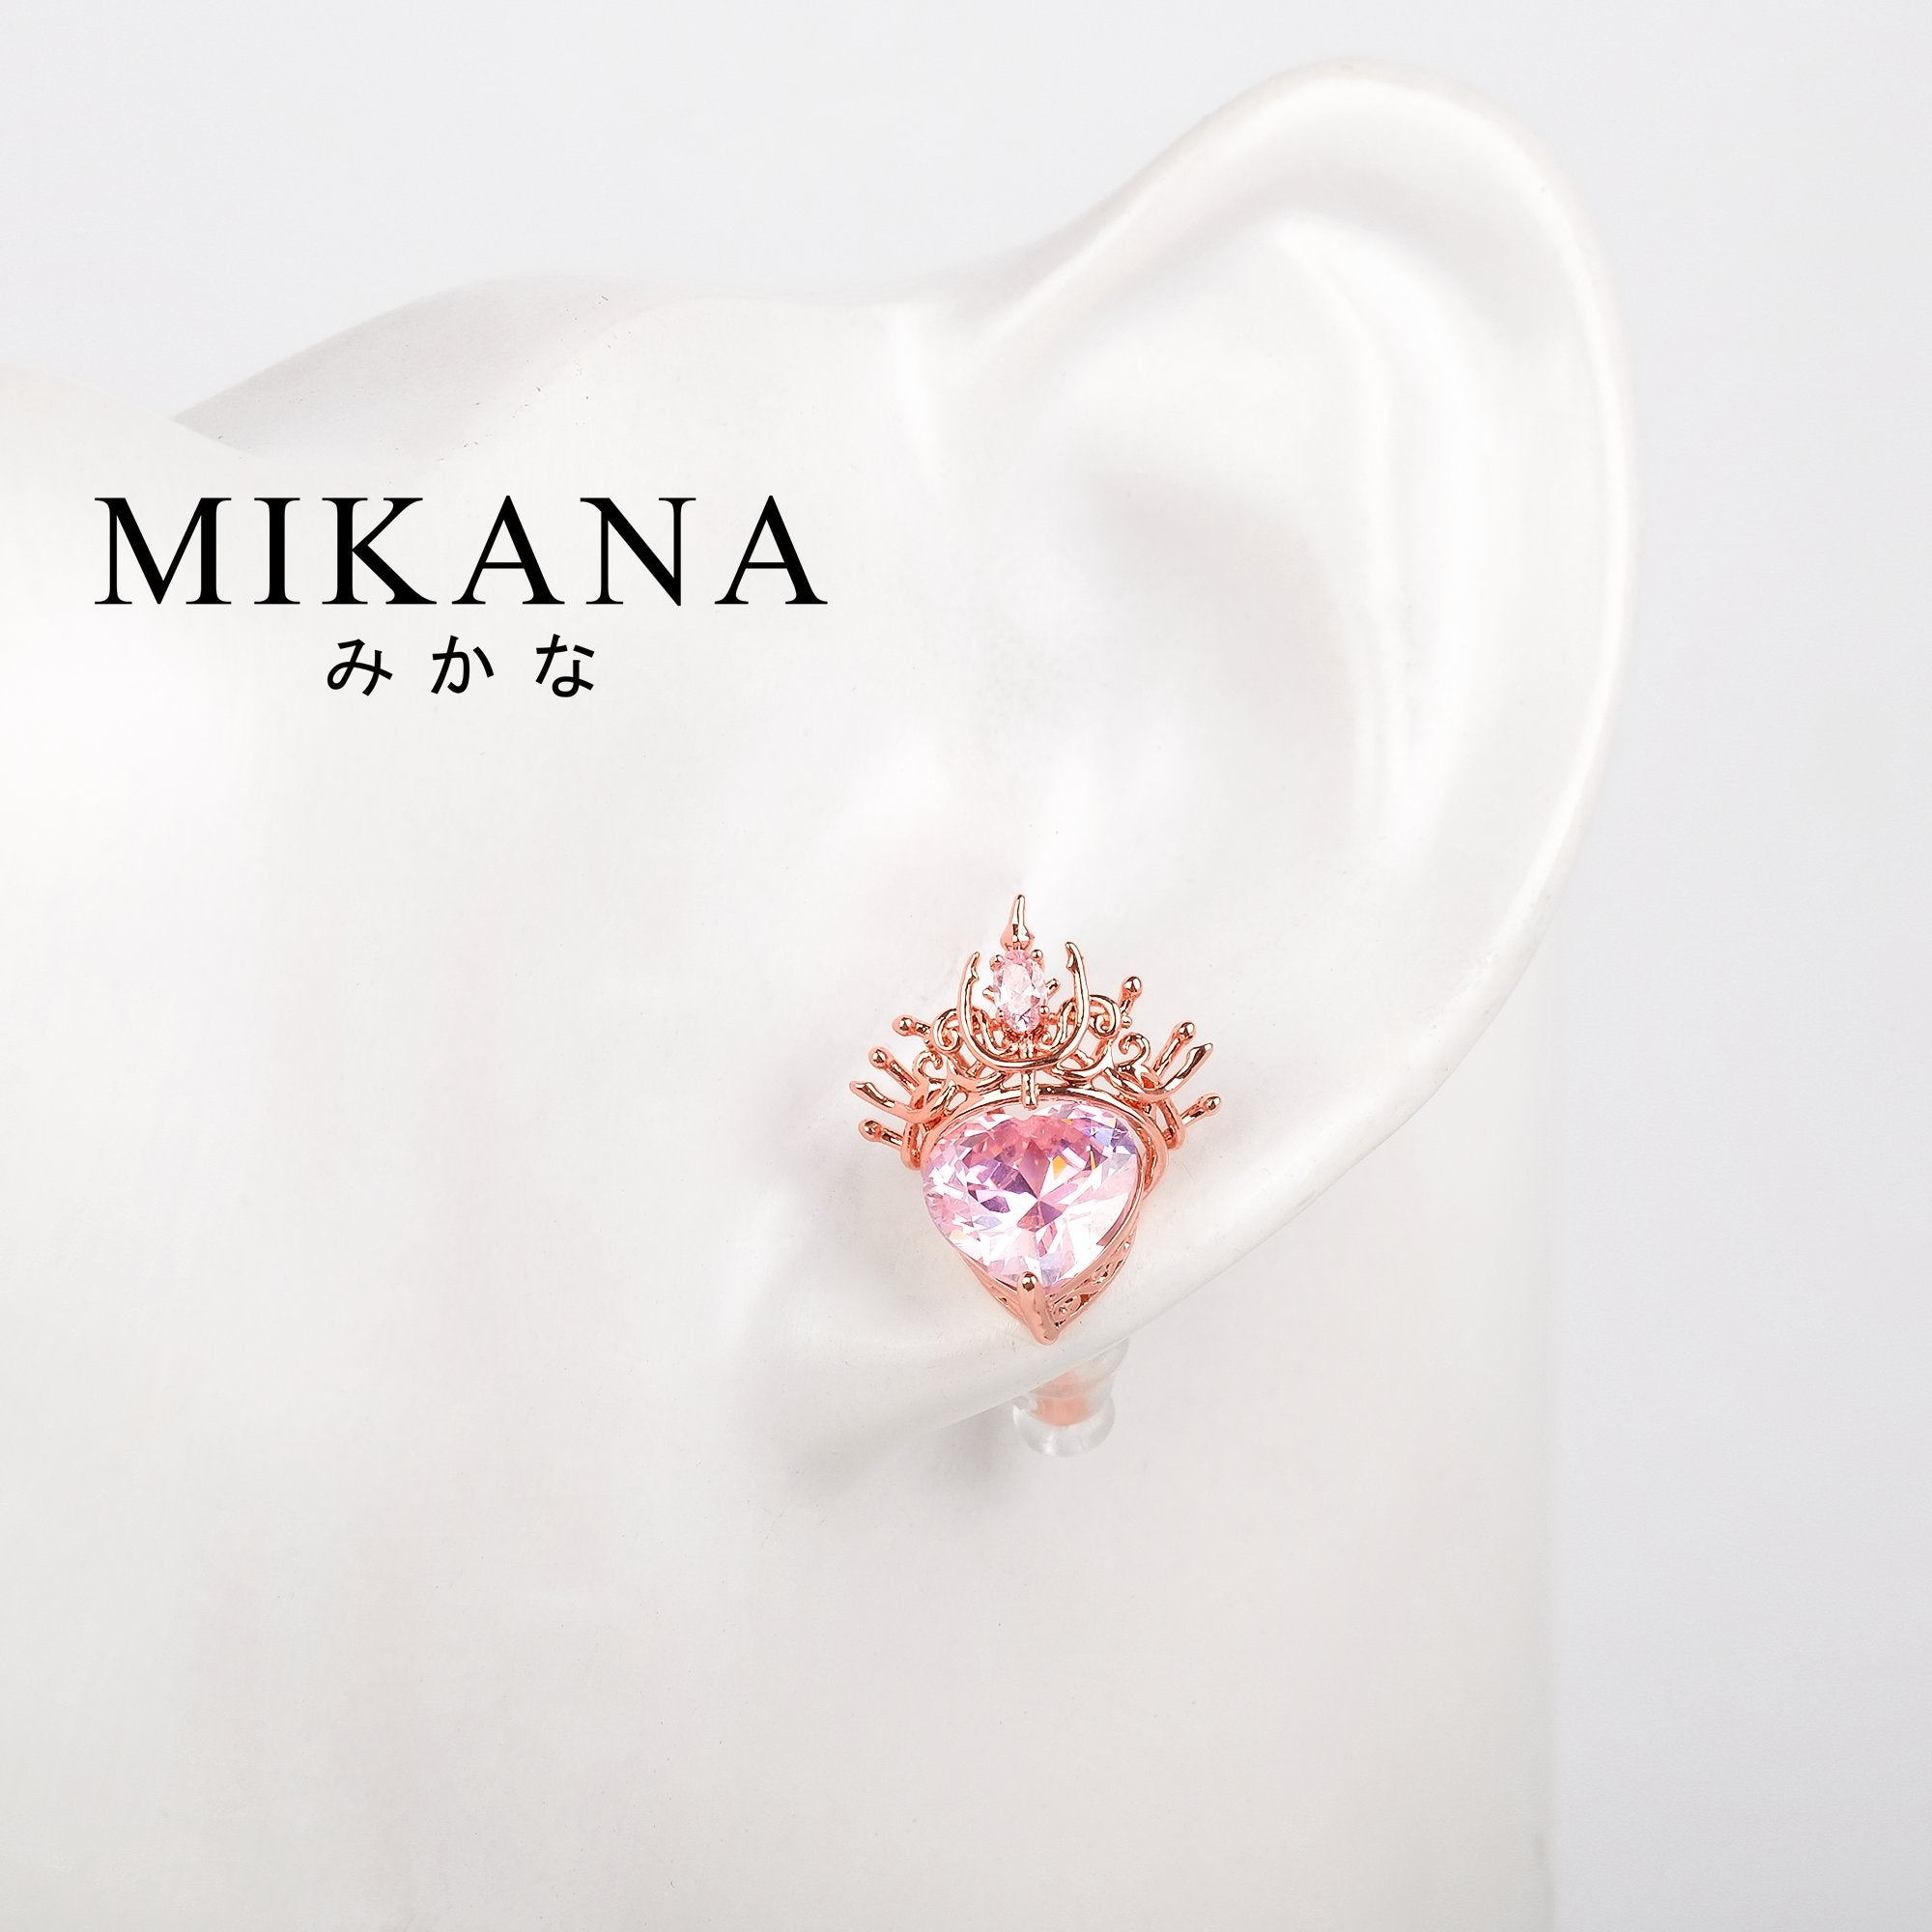 Mikana Magical Girl Mahou Shoujo Sailor Moon Chihime 18k Gold Plated Ring Accessories For Women